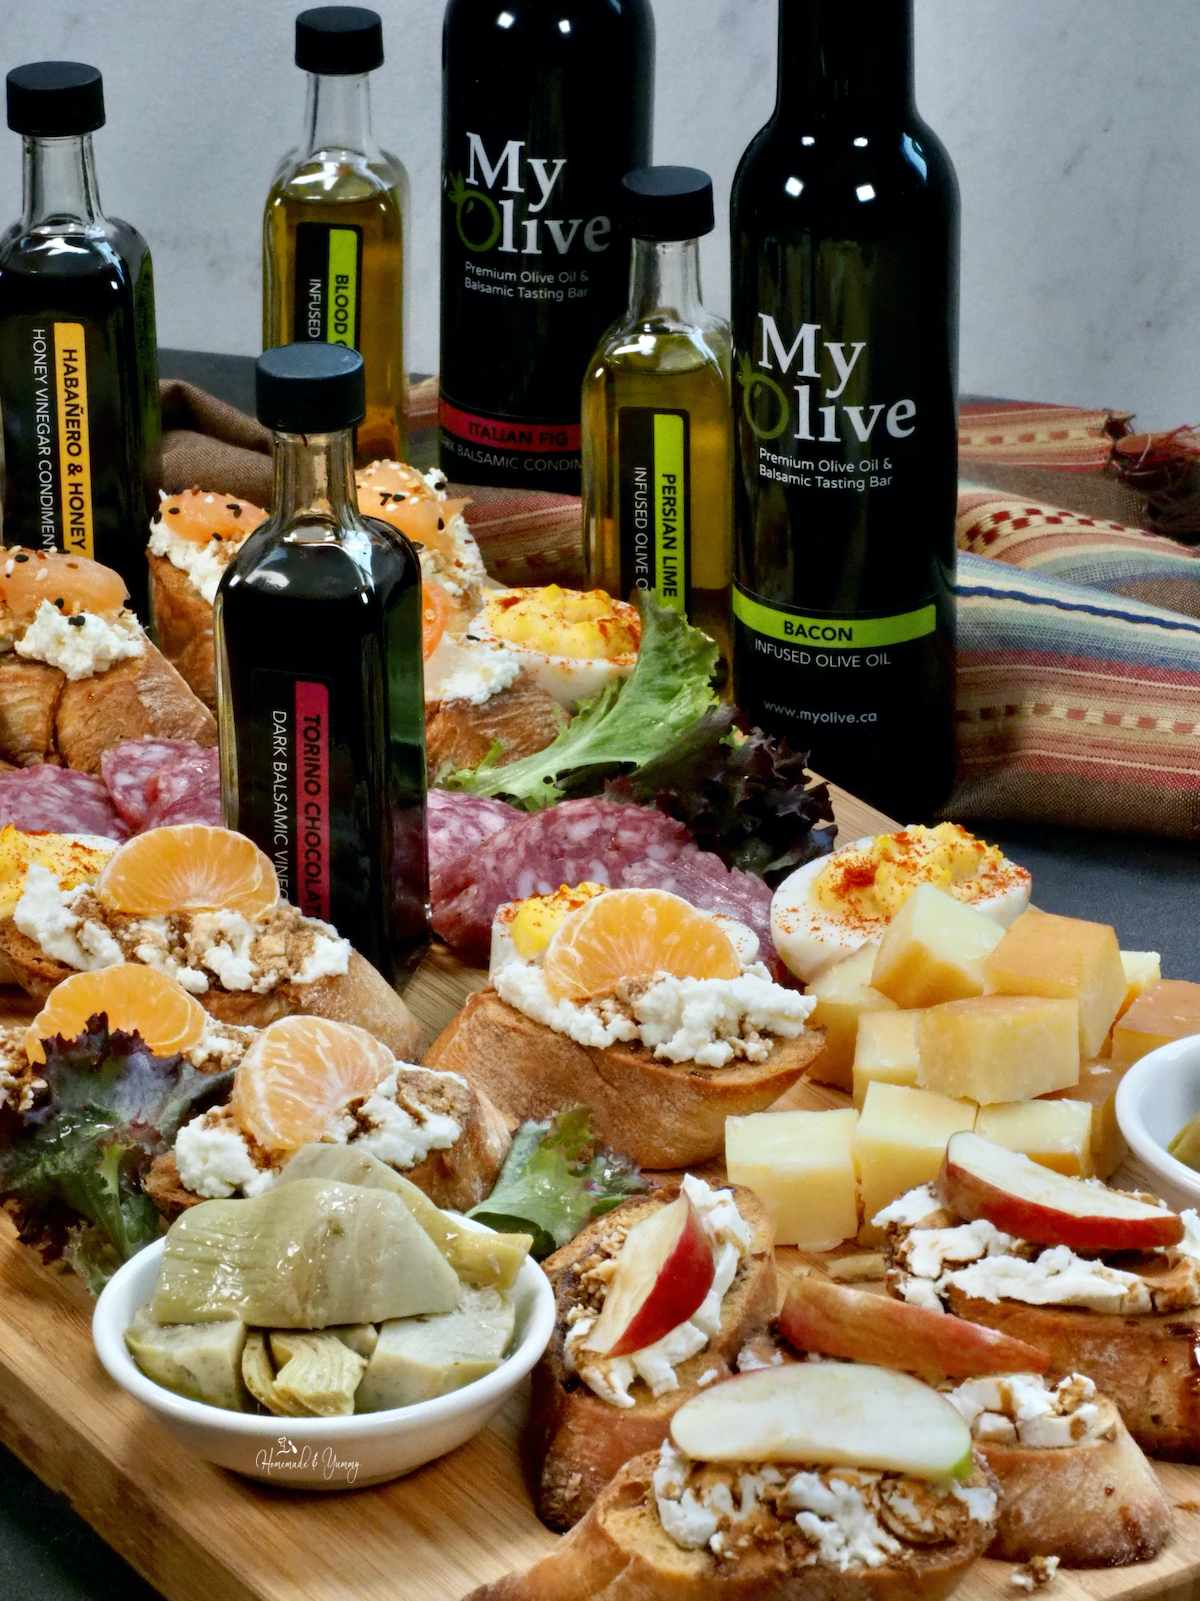 Crostini Appetizer Platter with meats and cheeses.